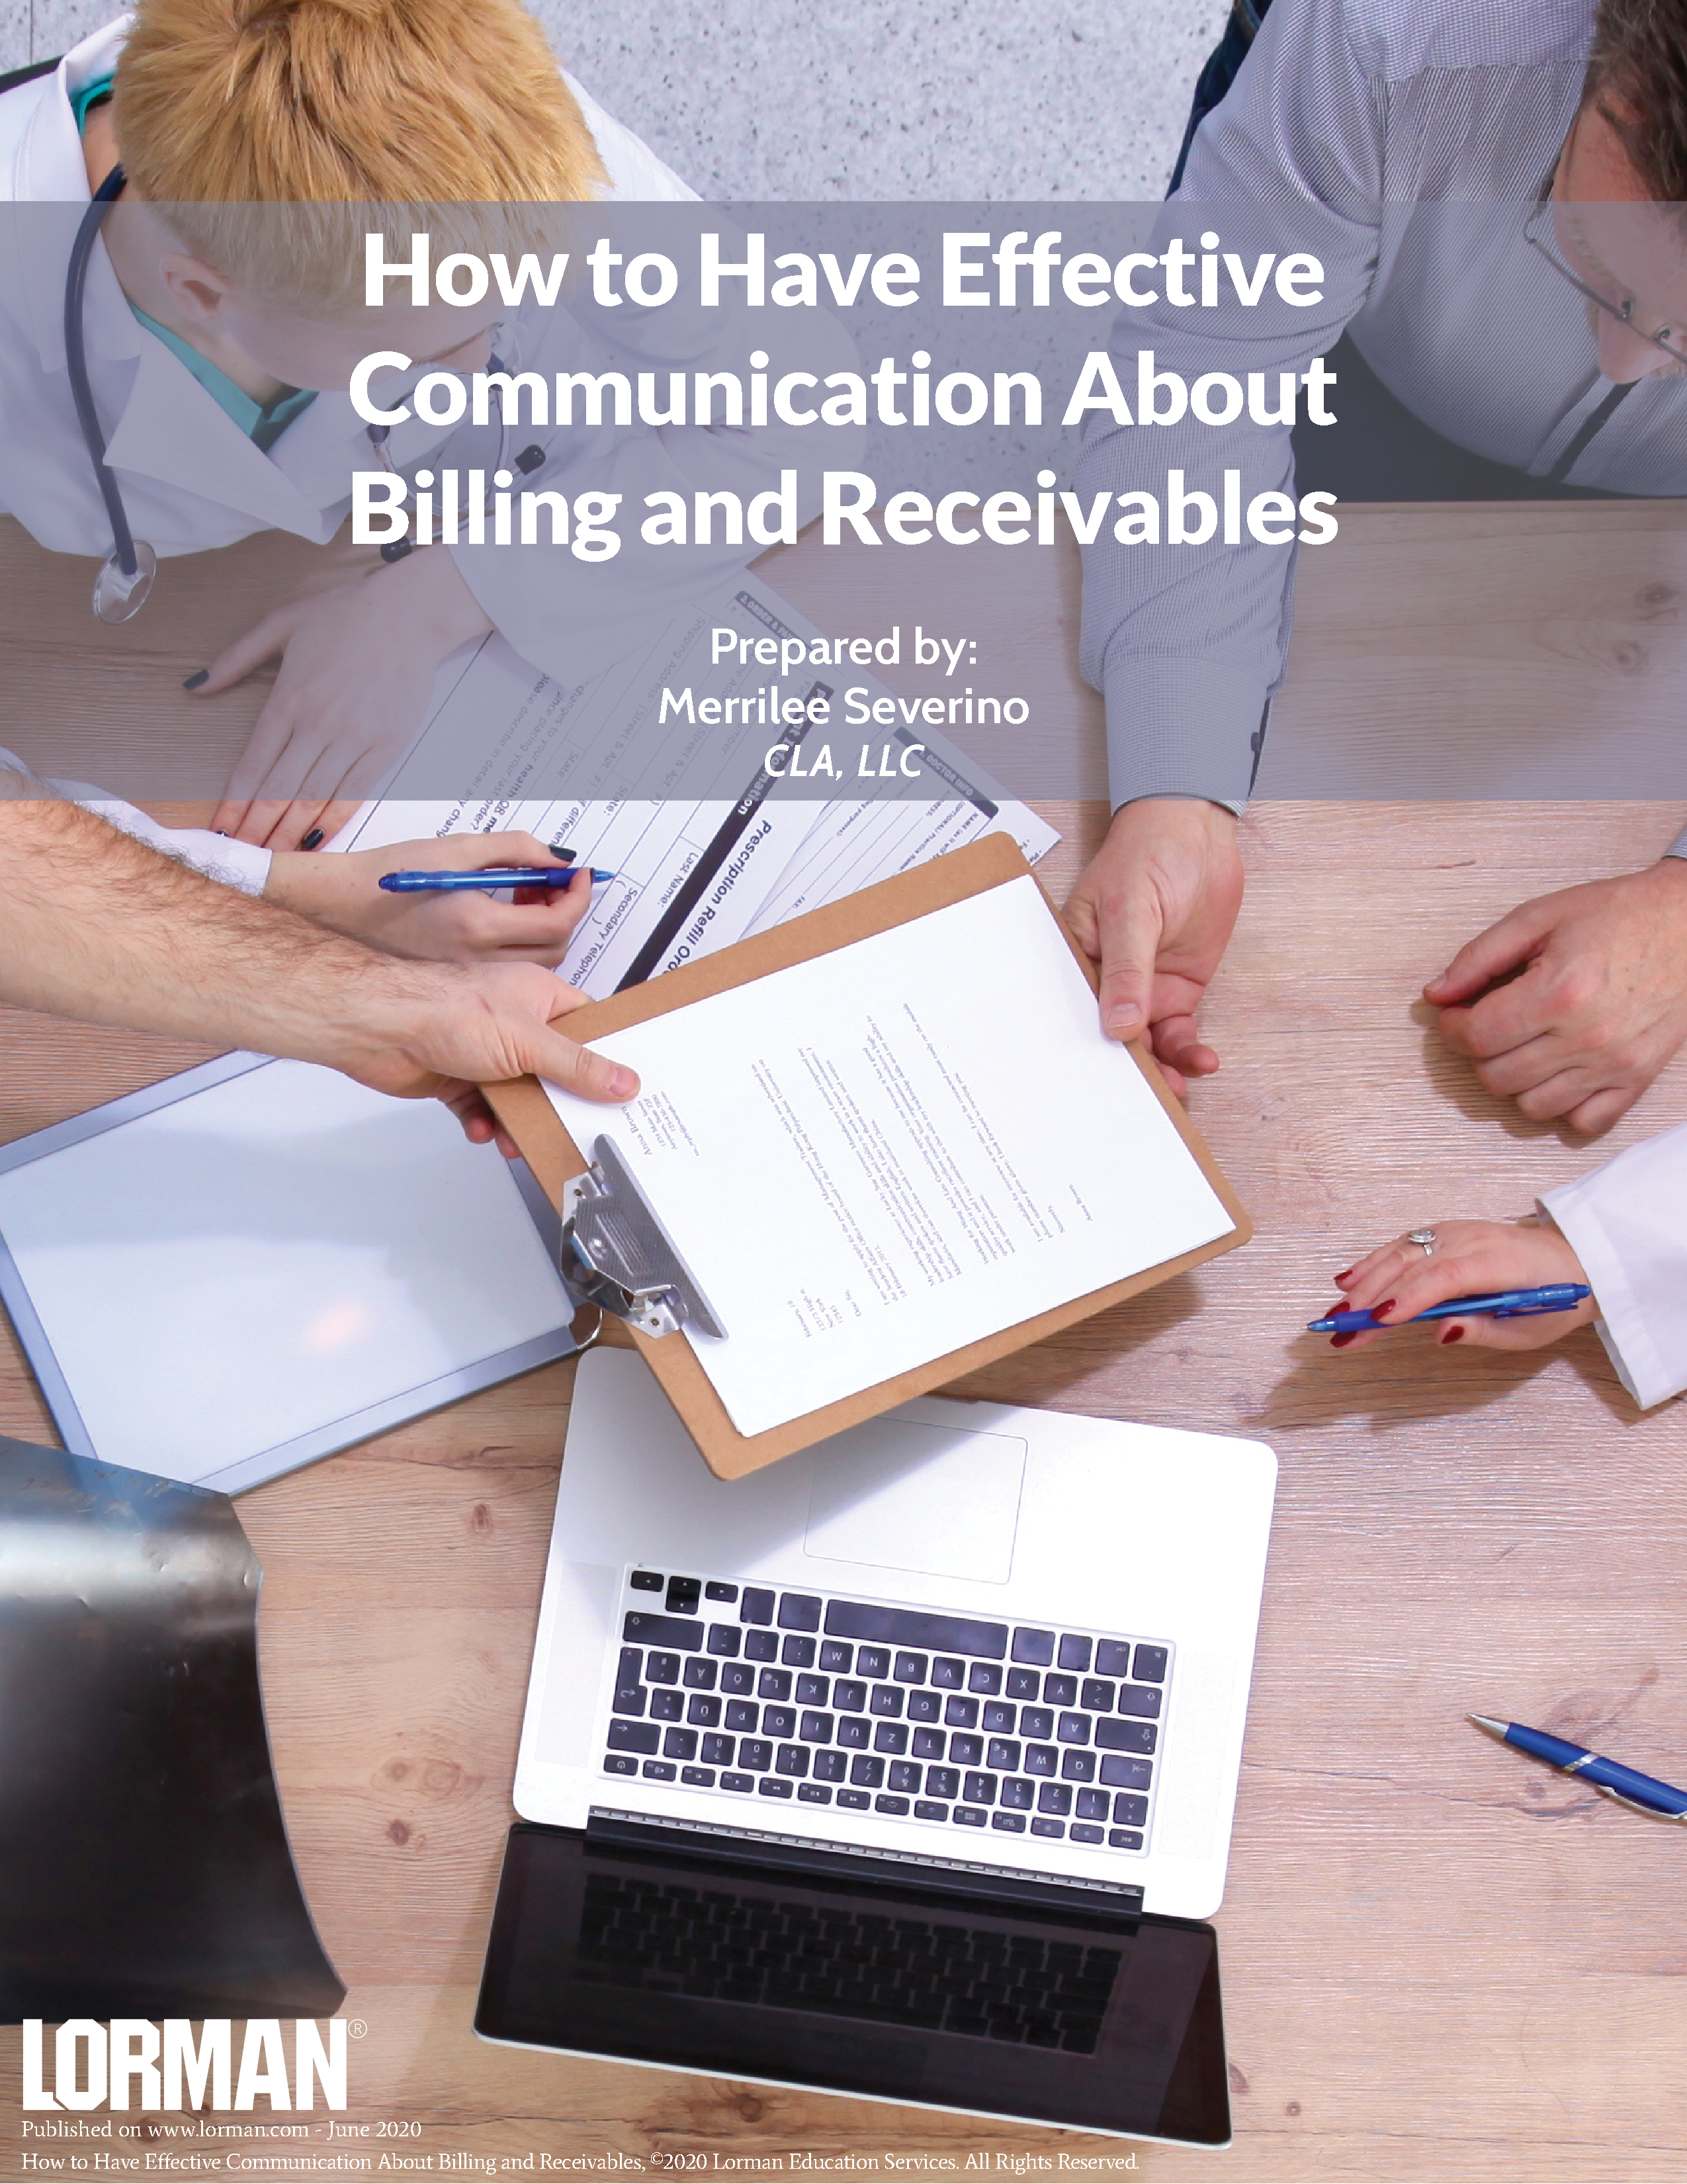 How to Have Effective Communication About Billing and Receivables